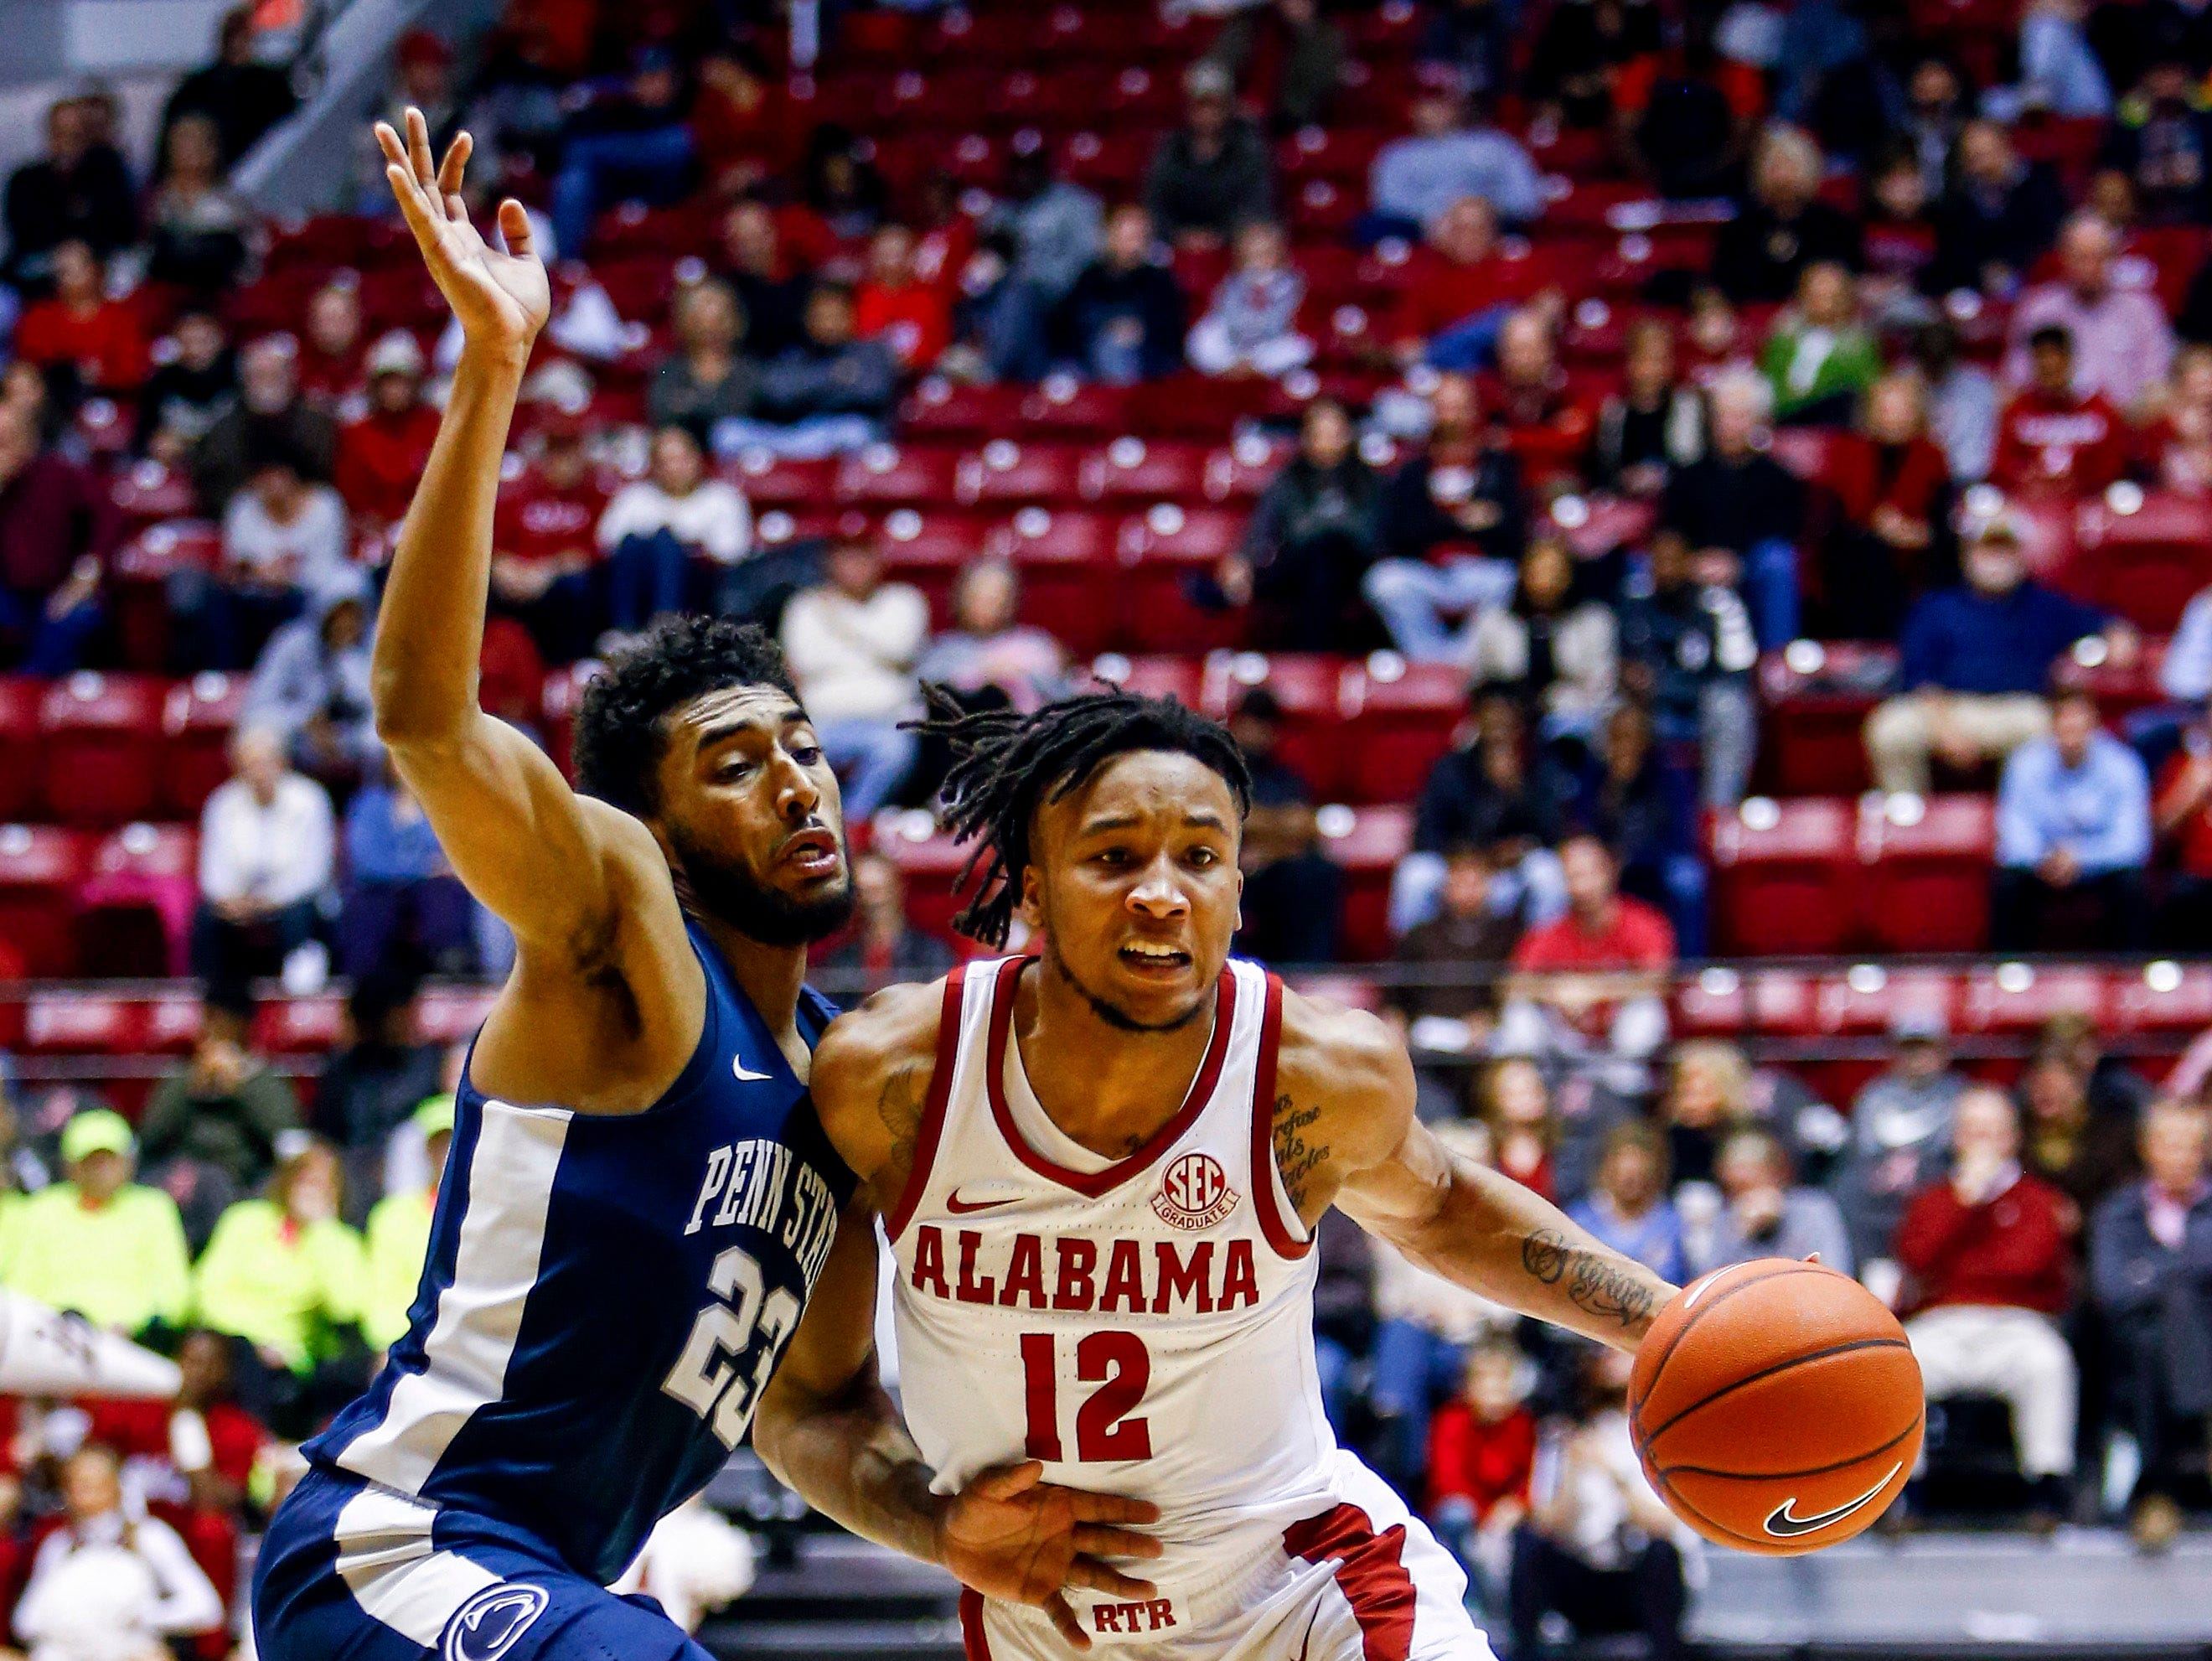 Dec 21, 2018; Tuscaloosa, AL, USA; Alabama Crimson Tide guard Dazon Ingram (12) dribbles the ball past Penn State Nittany Lions guard Josh Reaves (23) during the second half of an at Coleman Coliseum. Mandatory Credit: Butch Dill-USA TODAY Sports